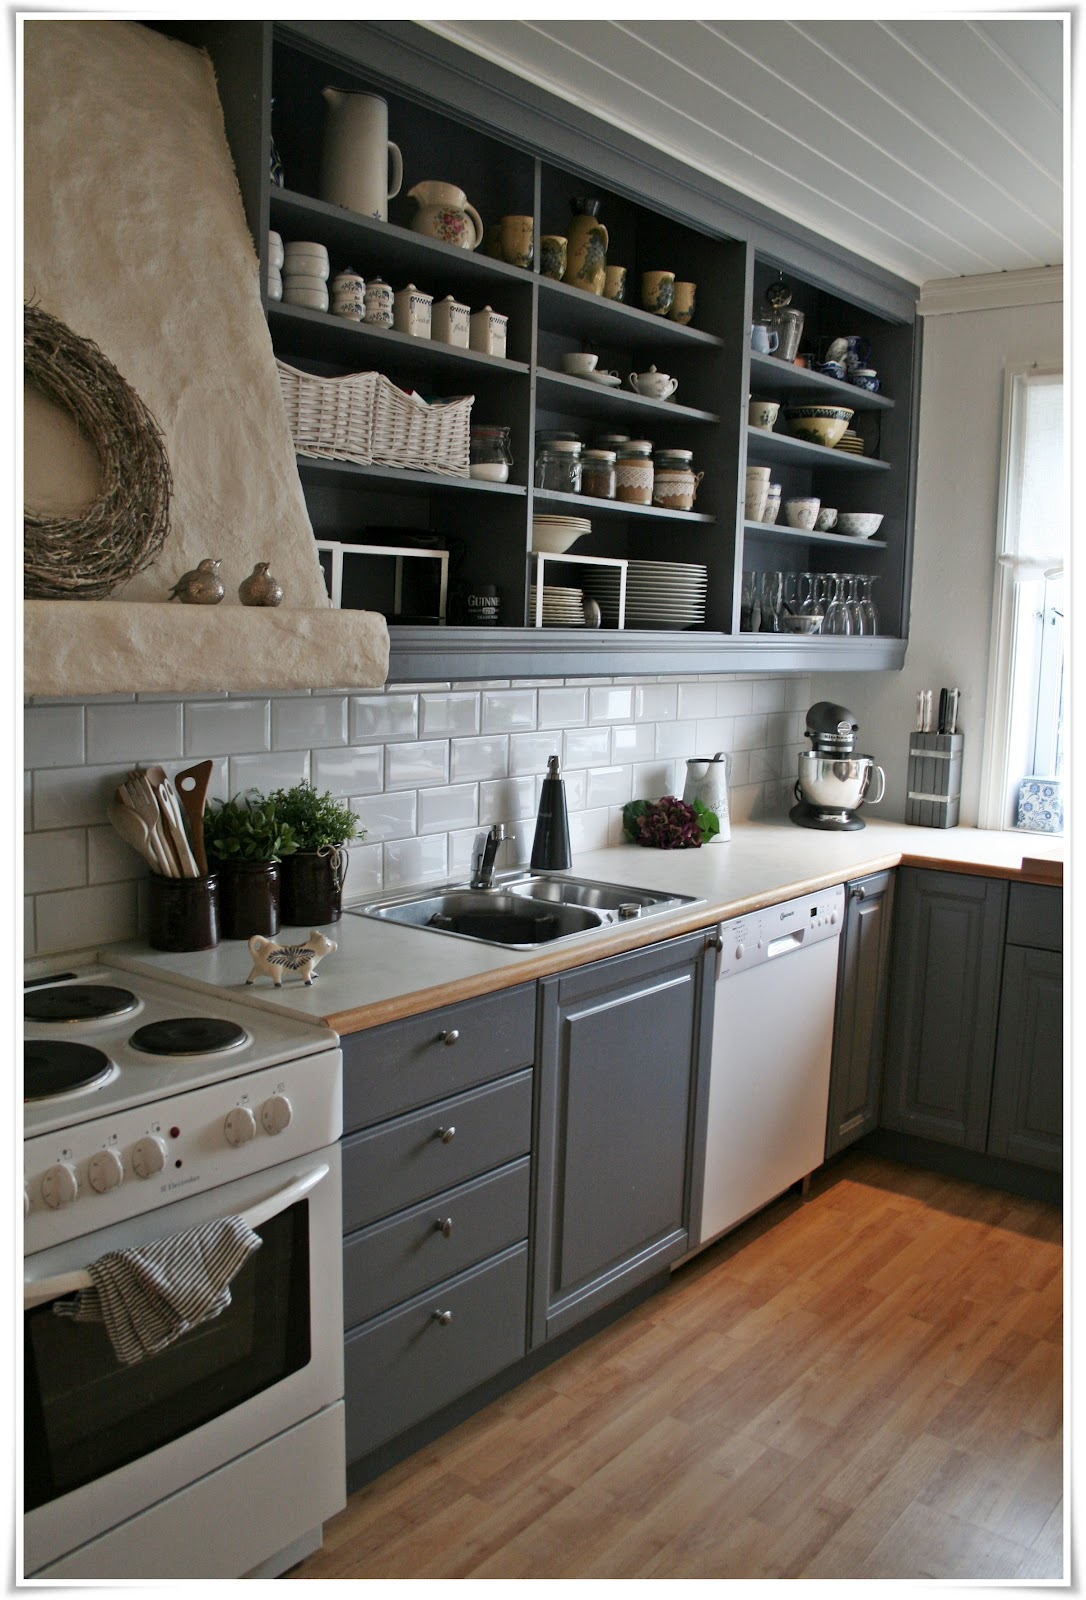 Kitchen Open Shelves 26 Kitchen Open Shelves Ideas Decoholic